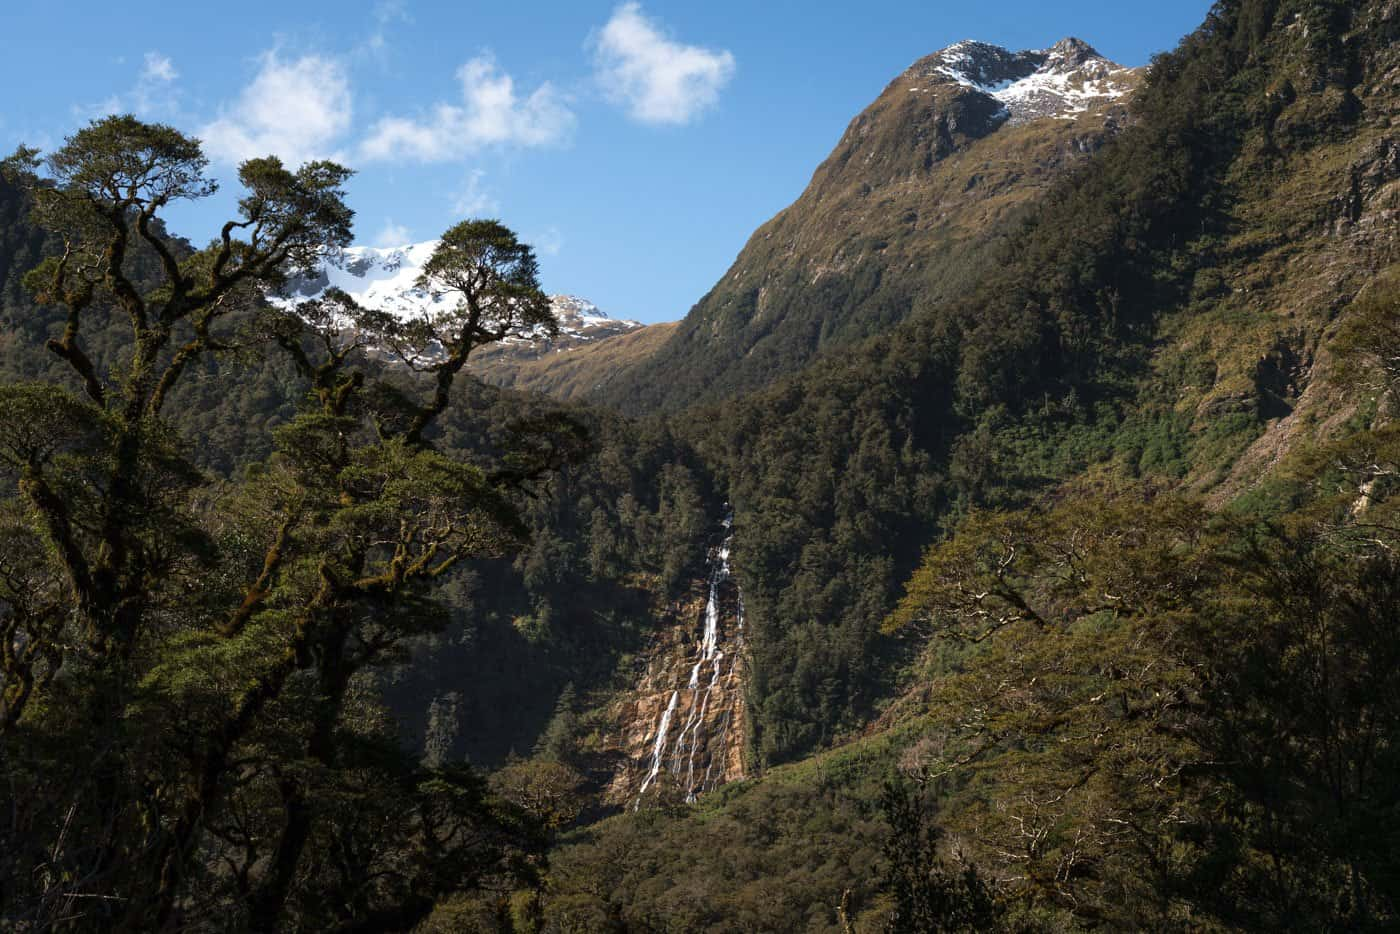 A trickling waterfall speaks to a dry week at Doubtful Sound.